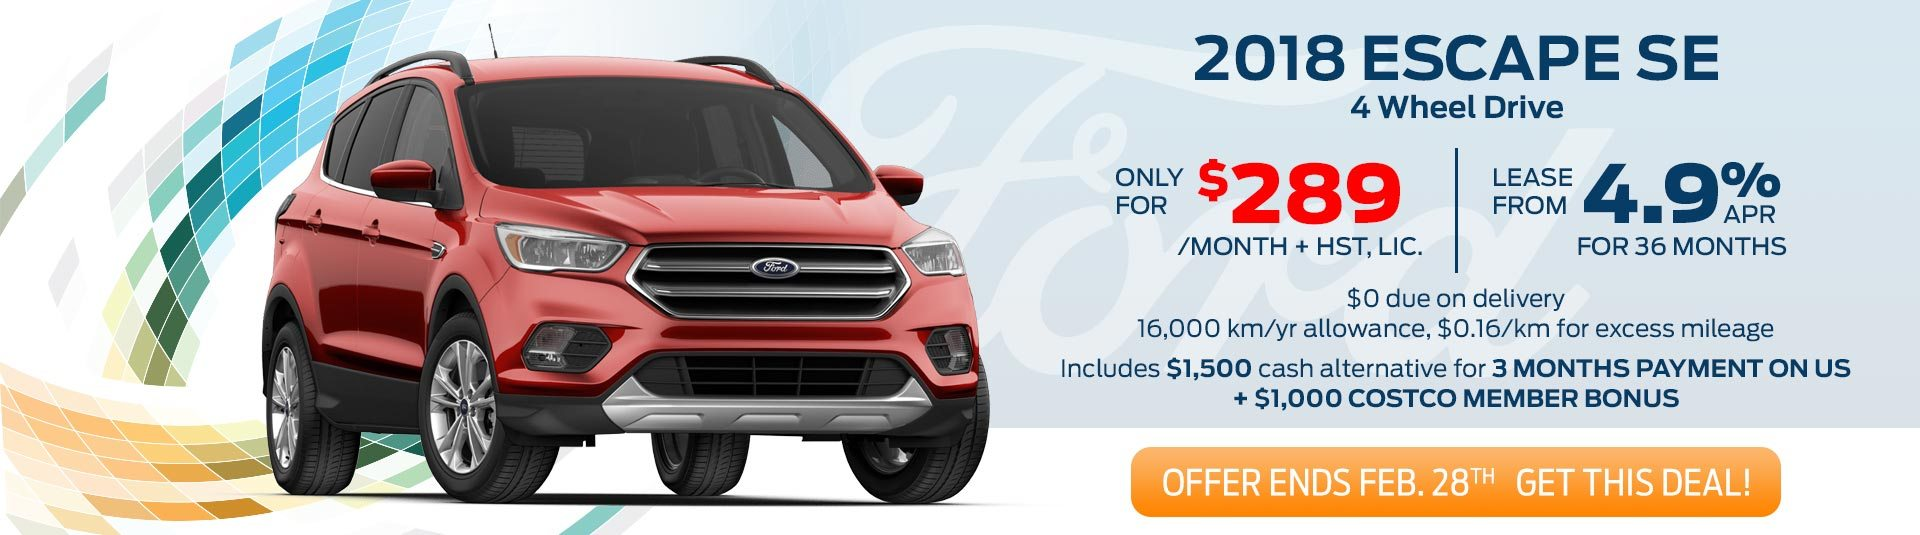 2018 Ford Escape SE Deals